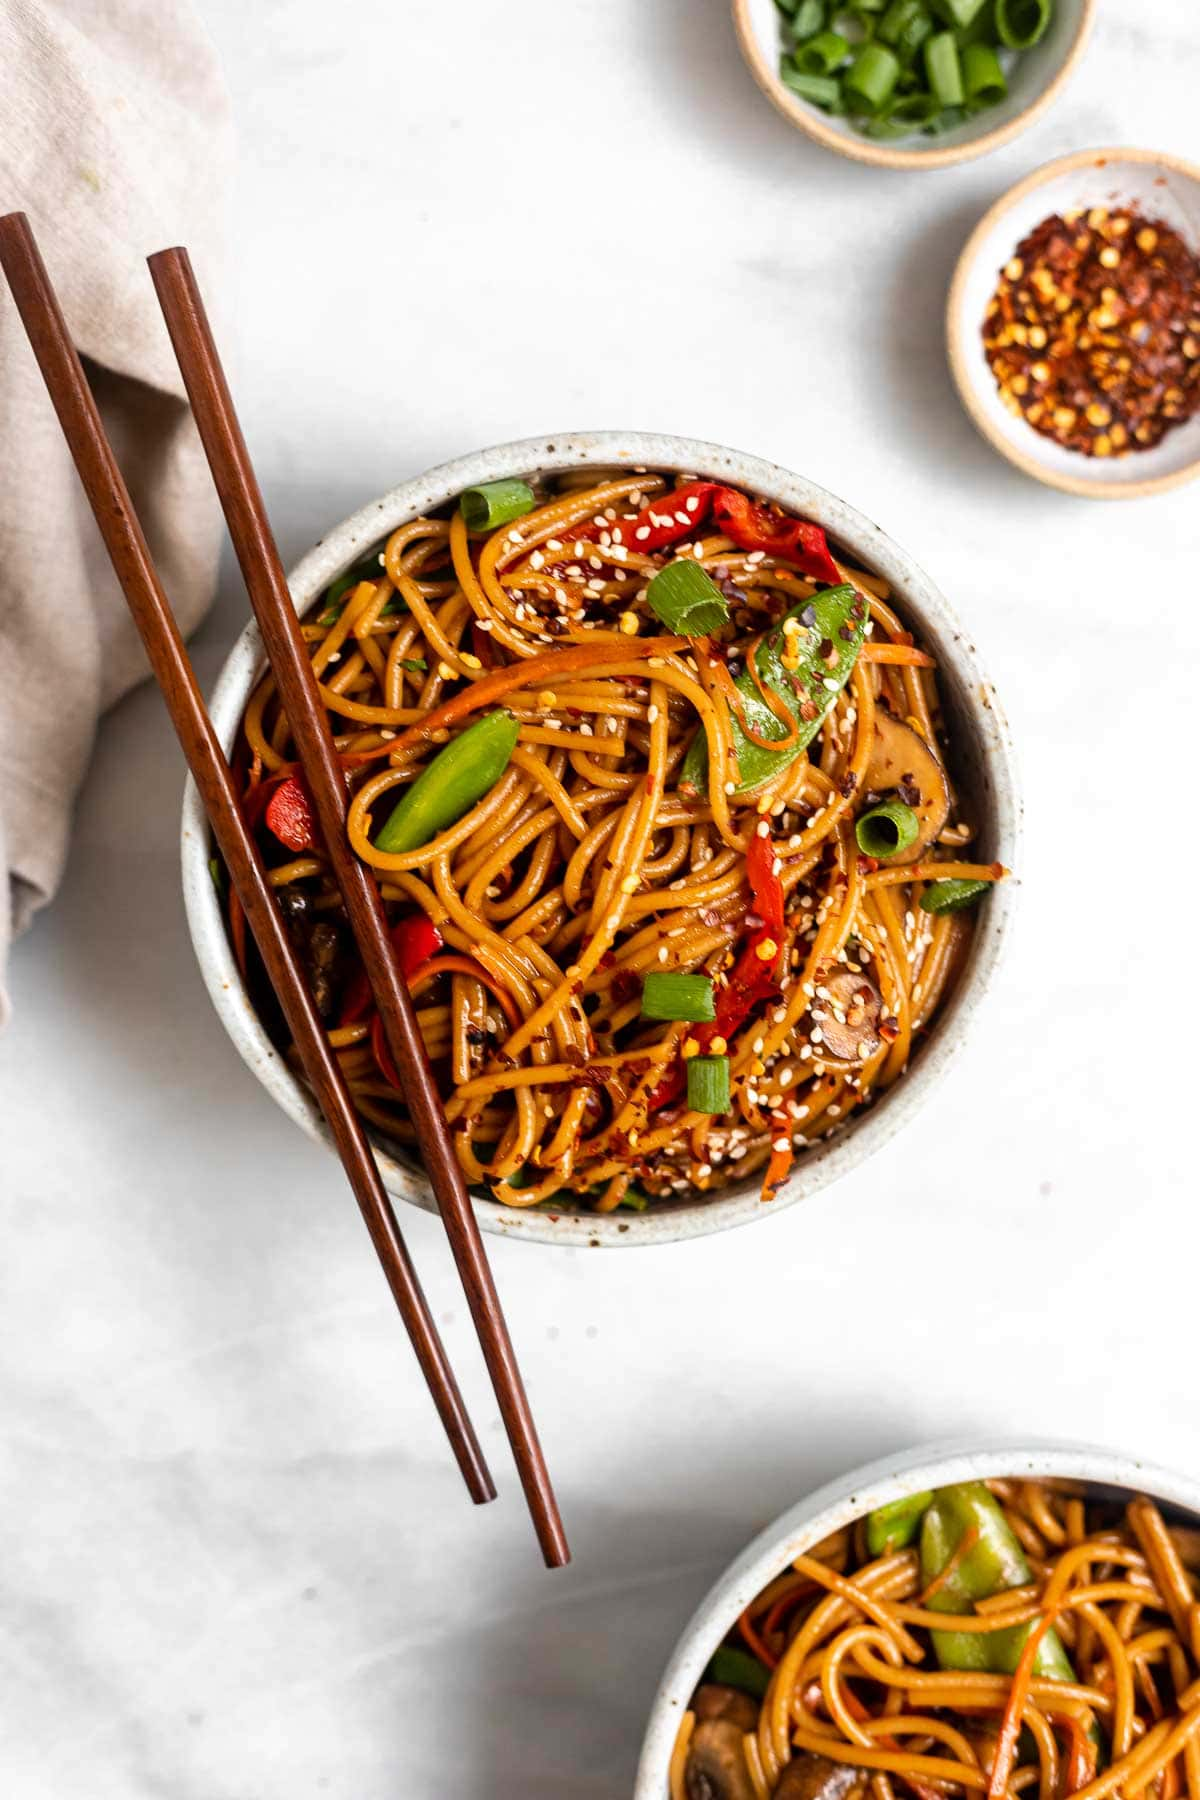 Two bowls of the vegetable lo mein with sesame seeds on top.